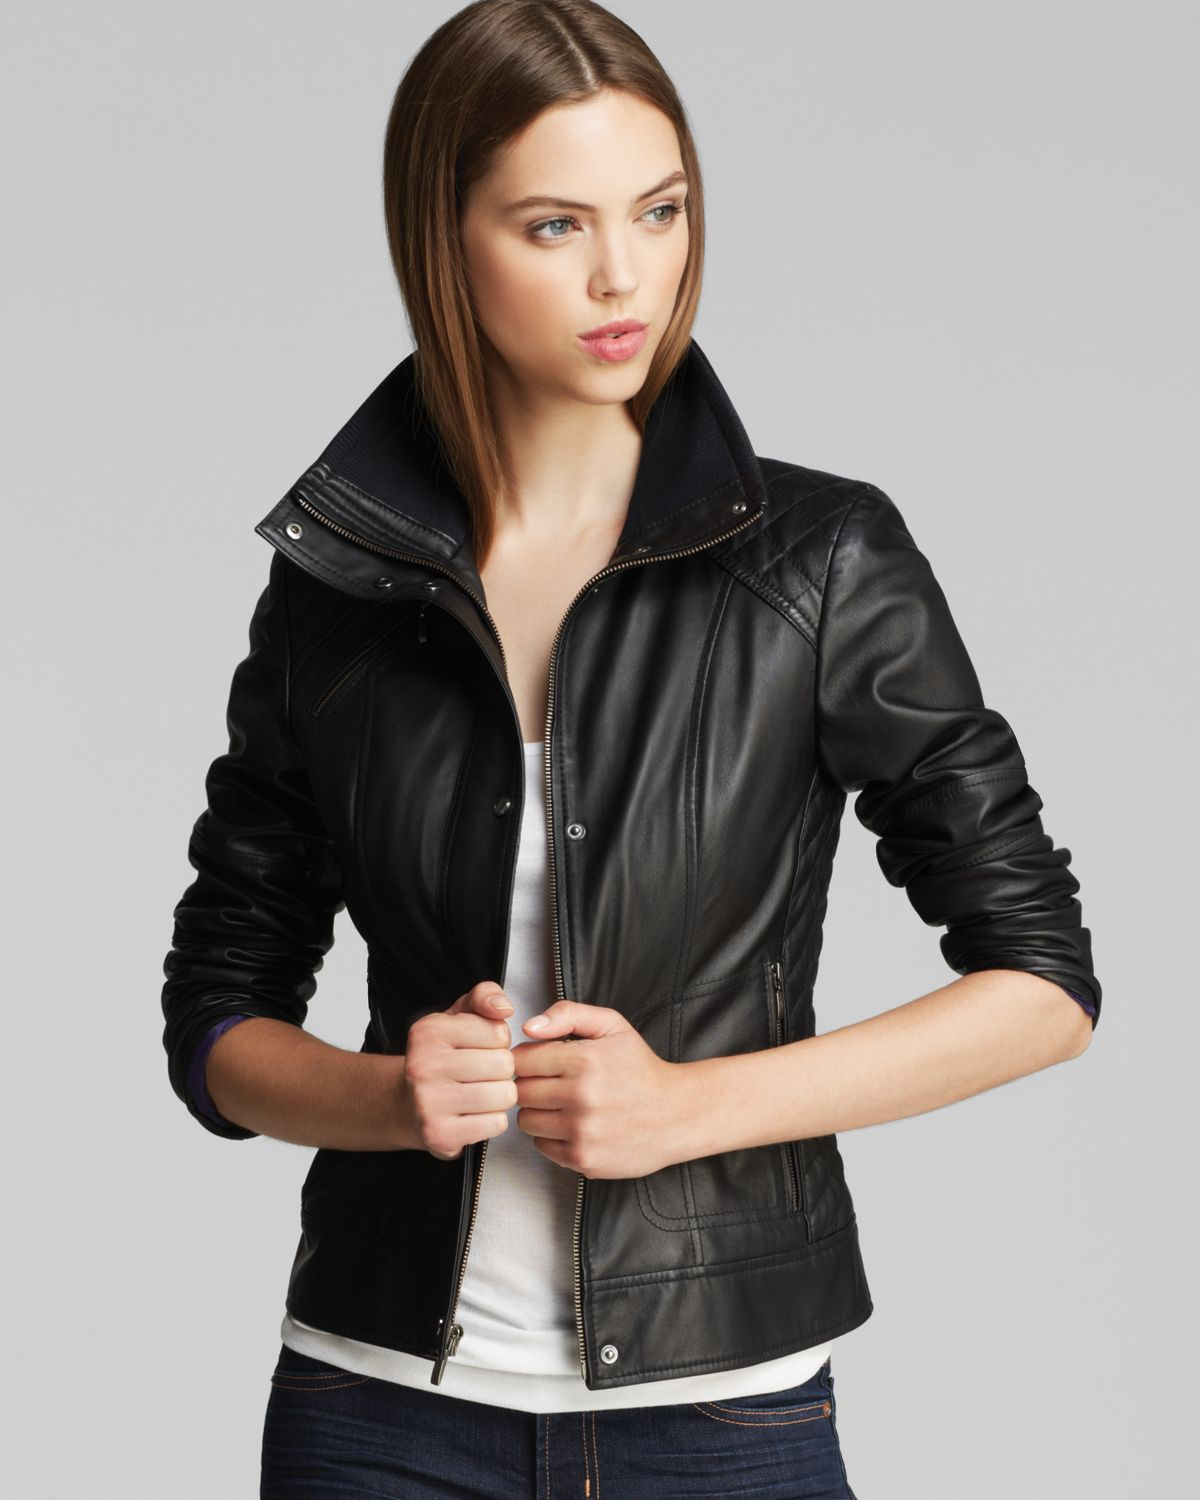 Cole haan leather jackets